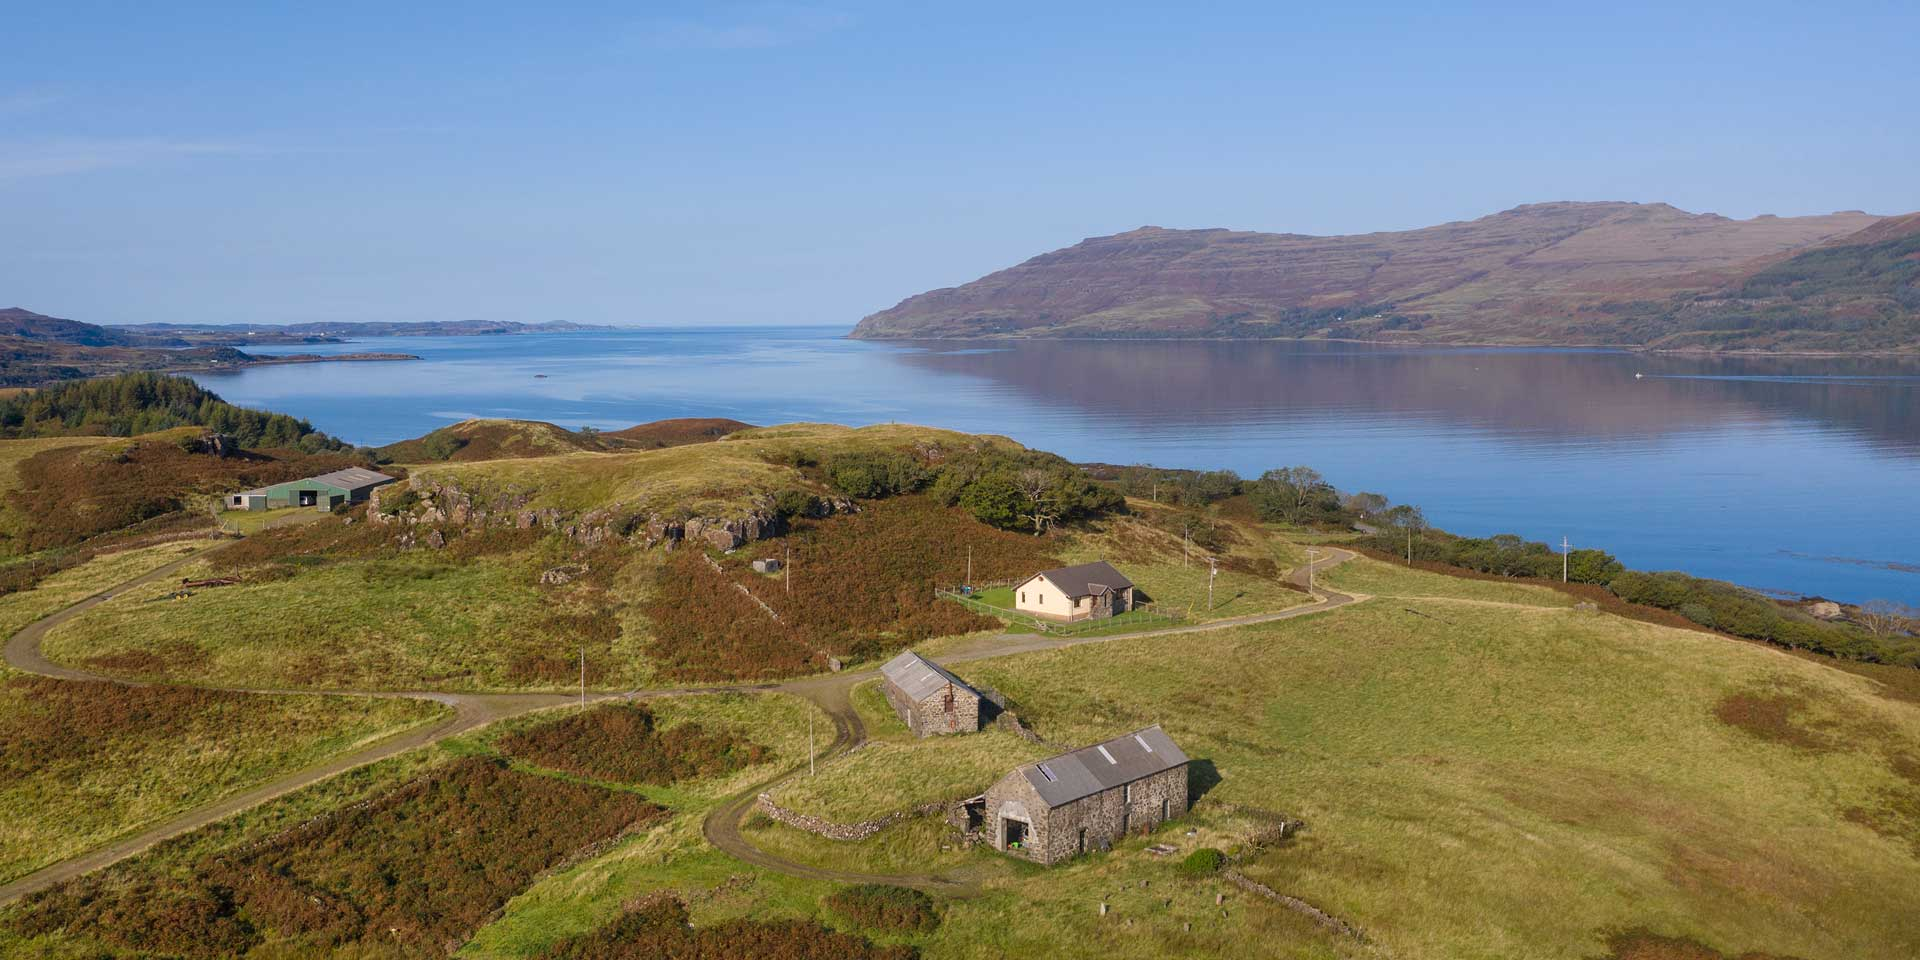 Torrans bungalow - Pennyghael Estate self catering on the Isle of Mull, Scotland